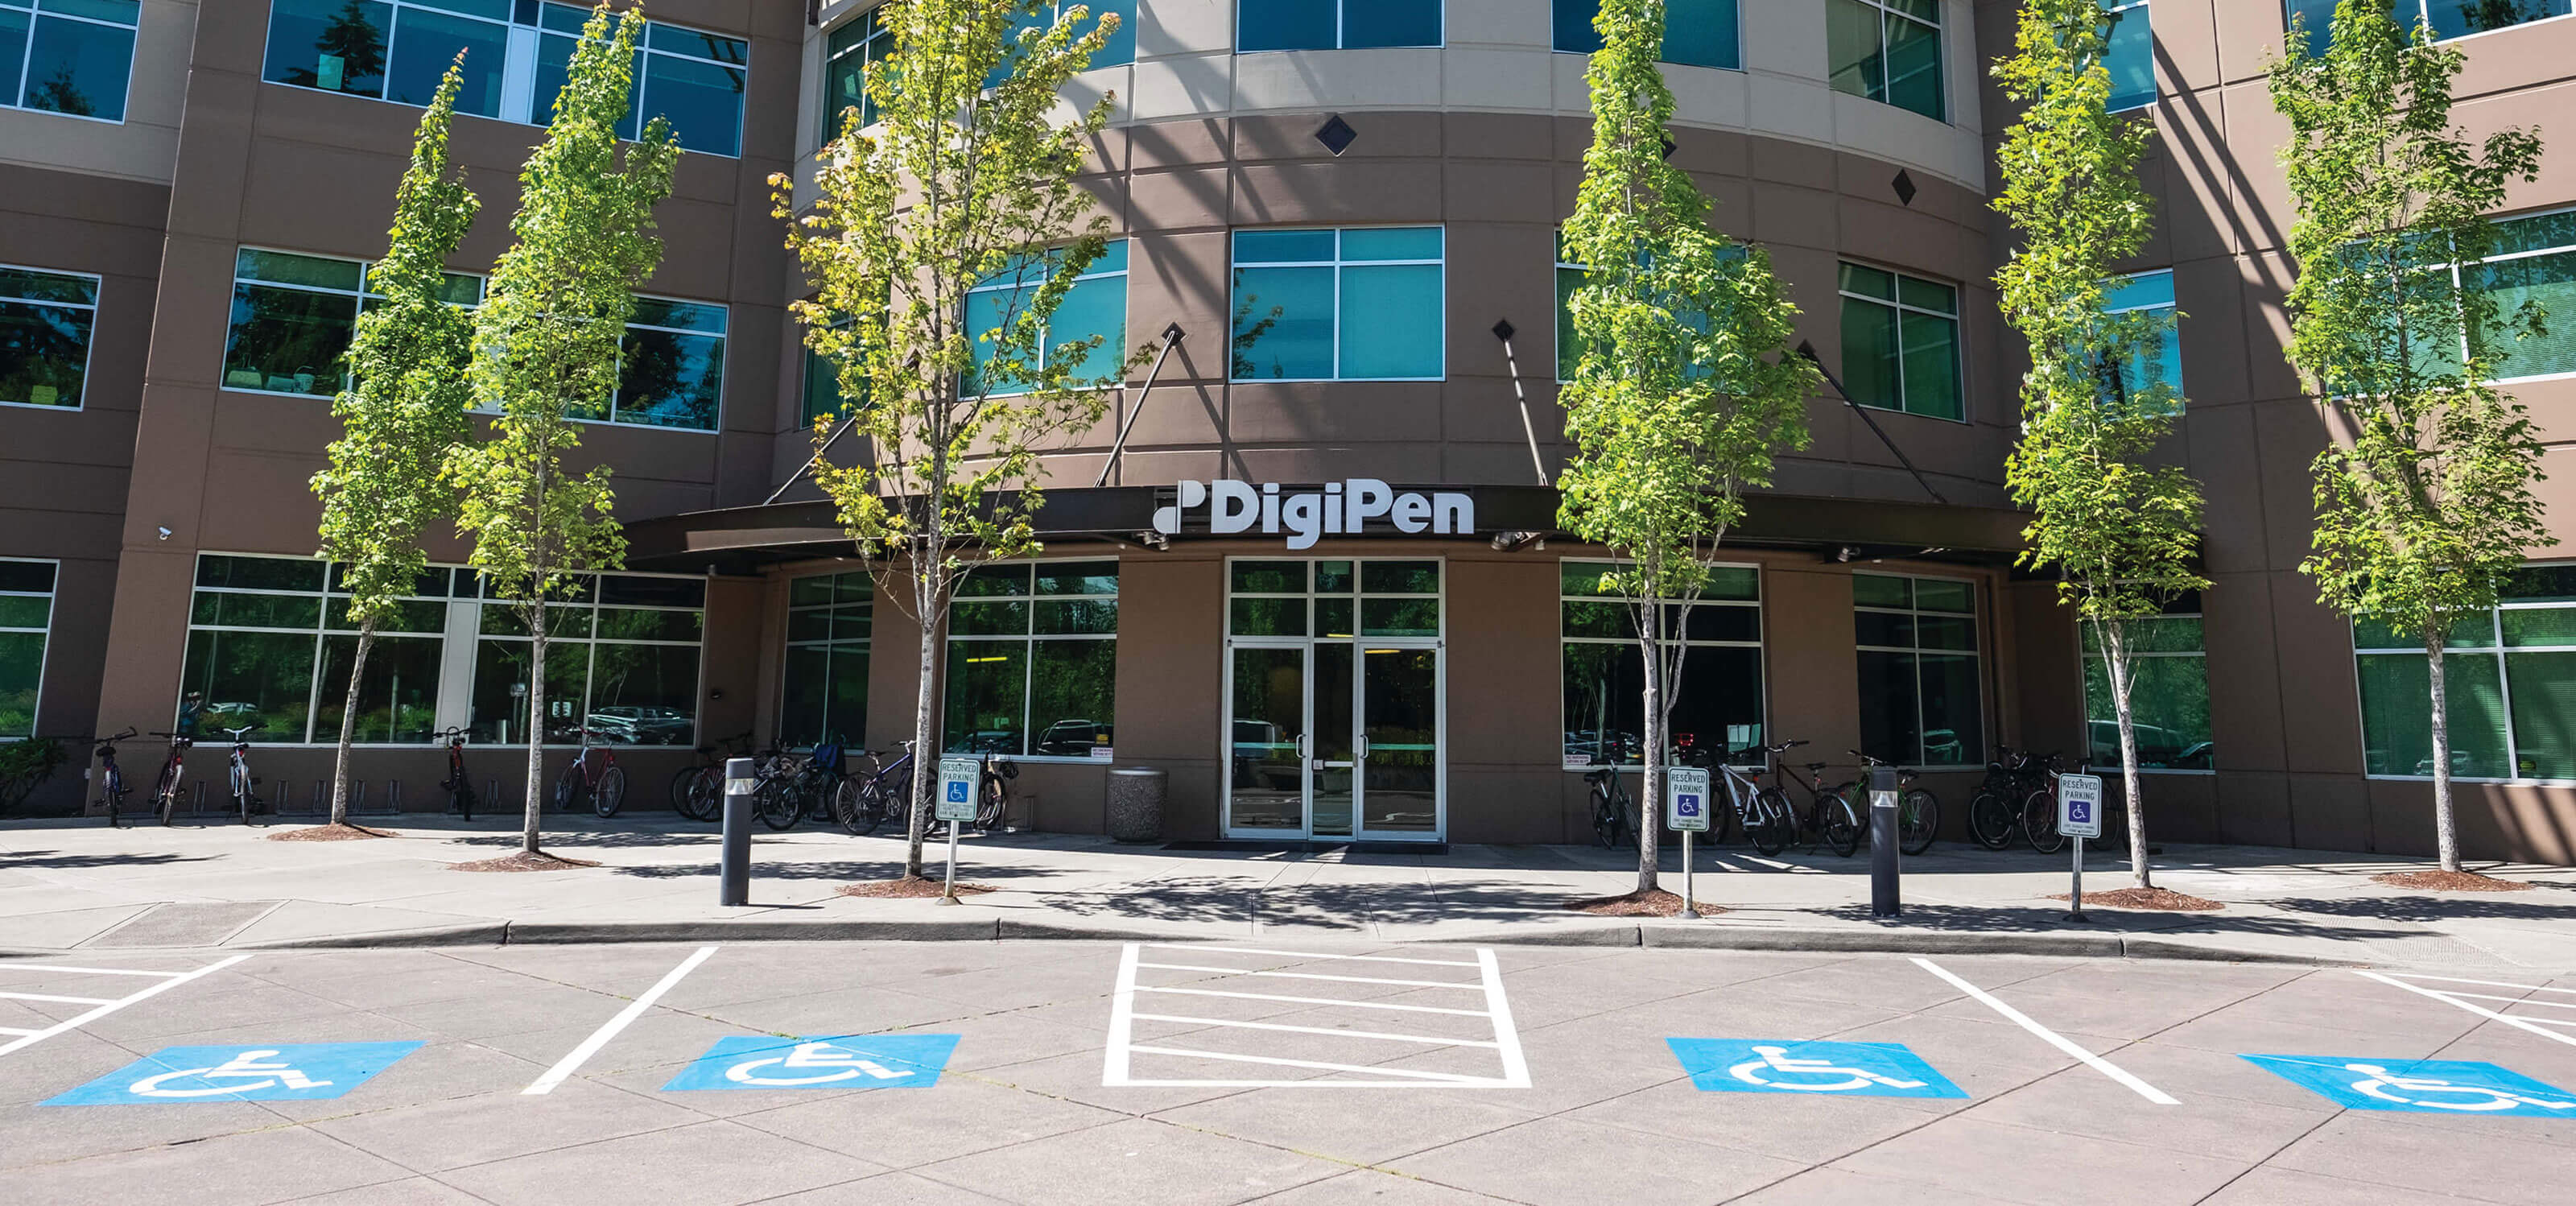 A photo of the DigiPen main entrance taken on a sunny day